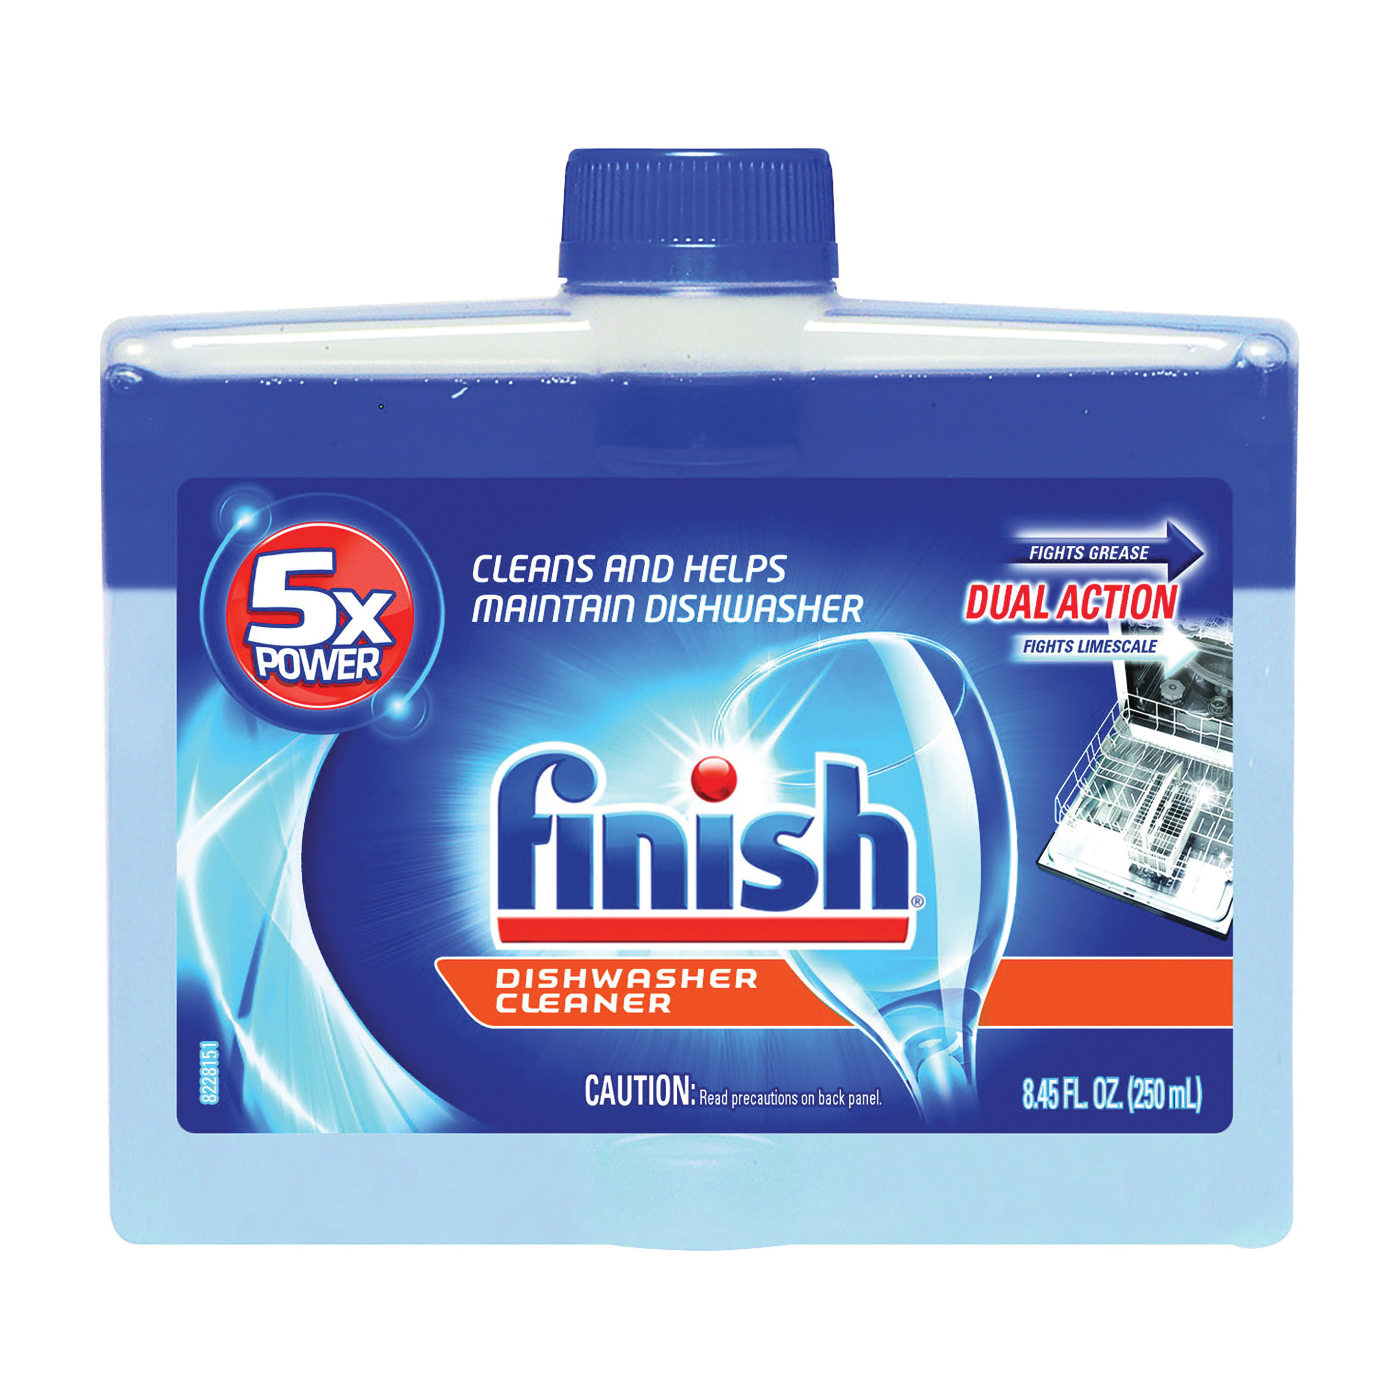 Picture of Finish 95315 Dishwasher Cleaner, 8.45 oz Package, Bottle, Liquid, Perfumed